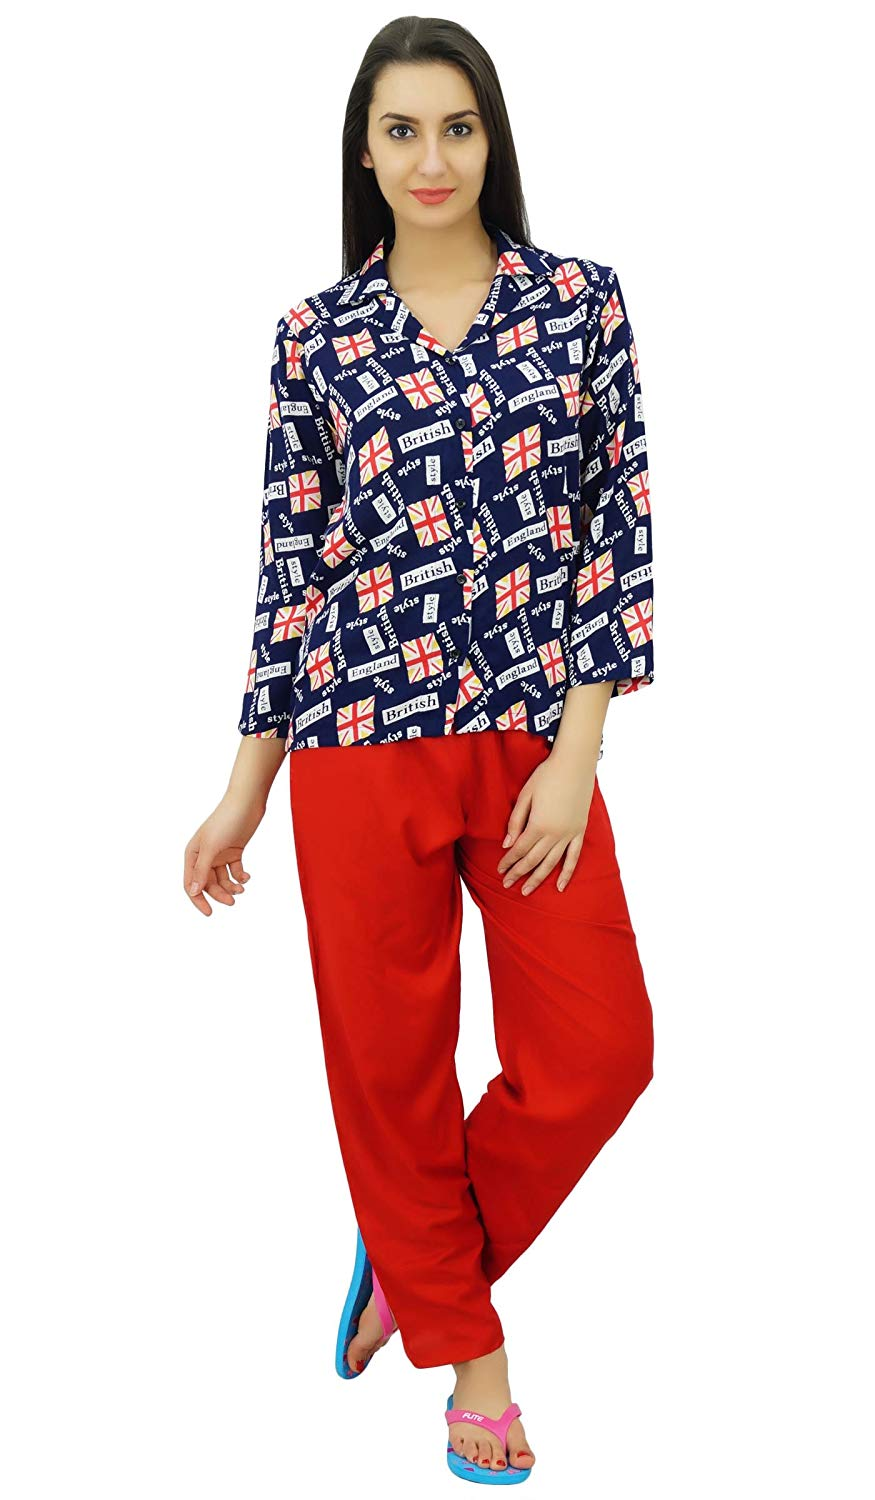 548215a3f2 Get Quotations · Bimba Button-Down Shirt With Pajama Pants Night Wear Set  Lounge Wear Sleep Shirt